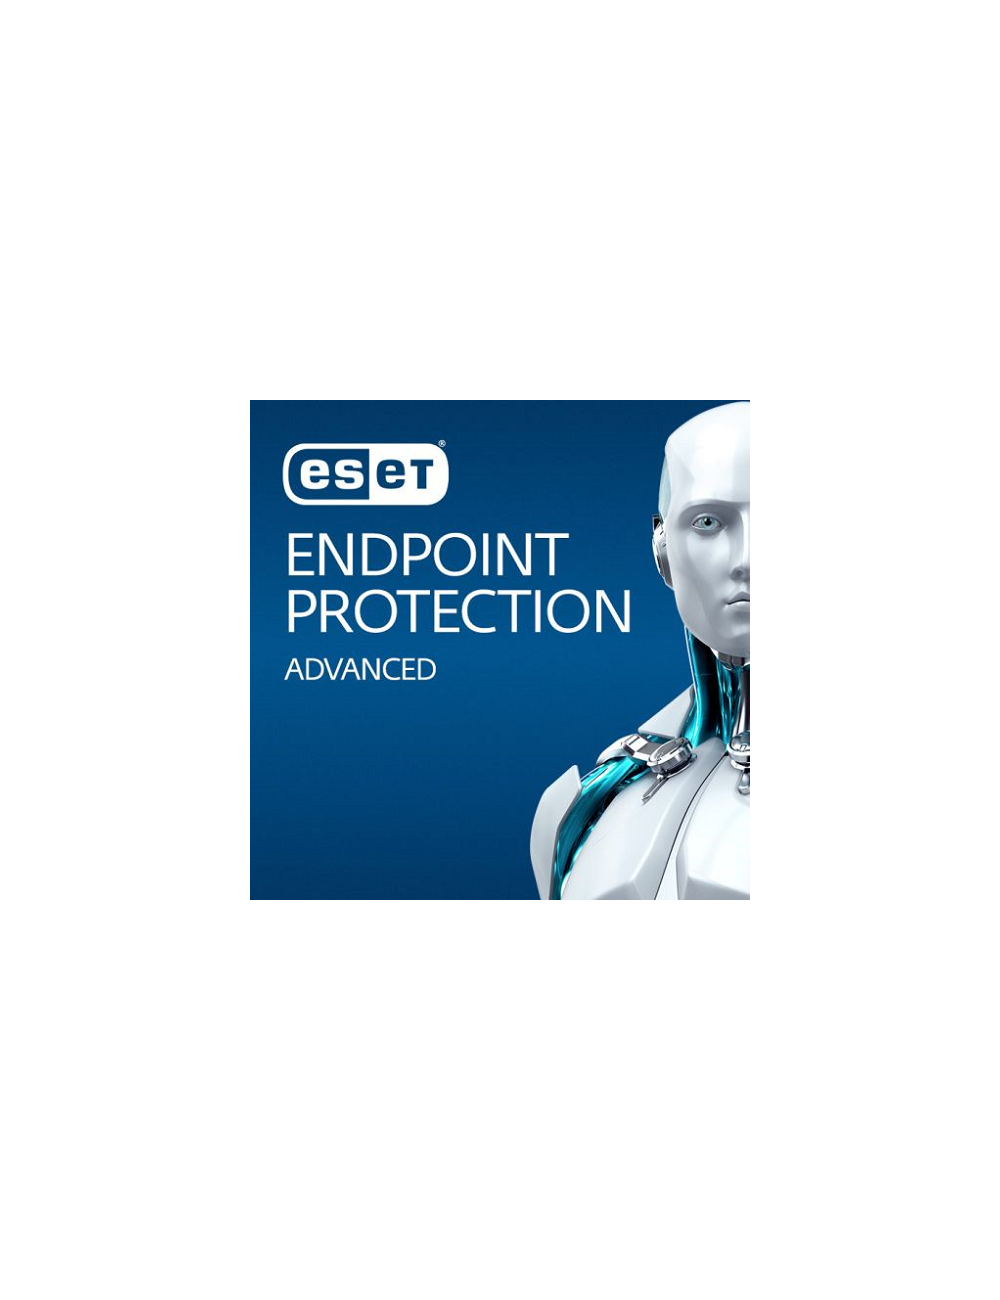 ESET Endpoint Protection Advanced (500-999 postes) -  Licence 1 poste - 1 an